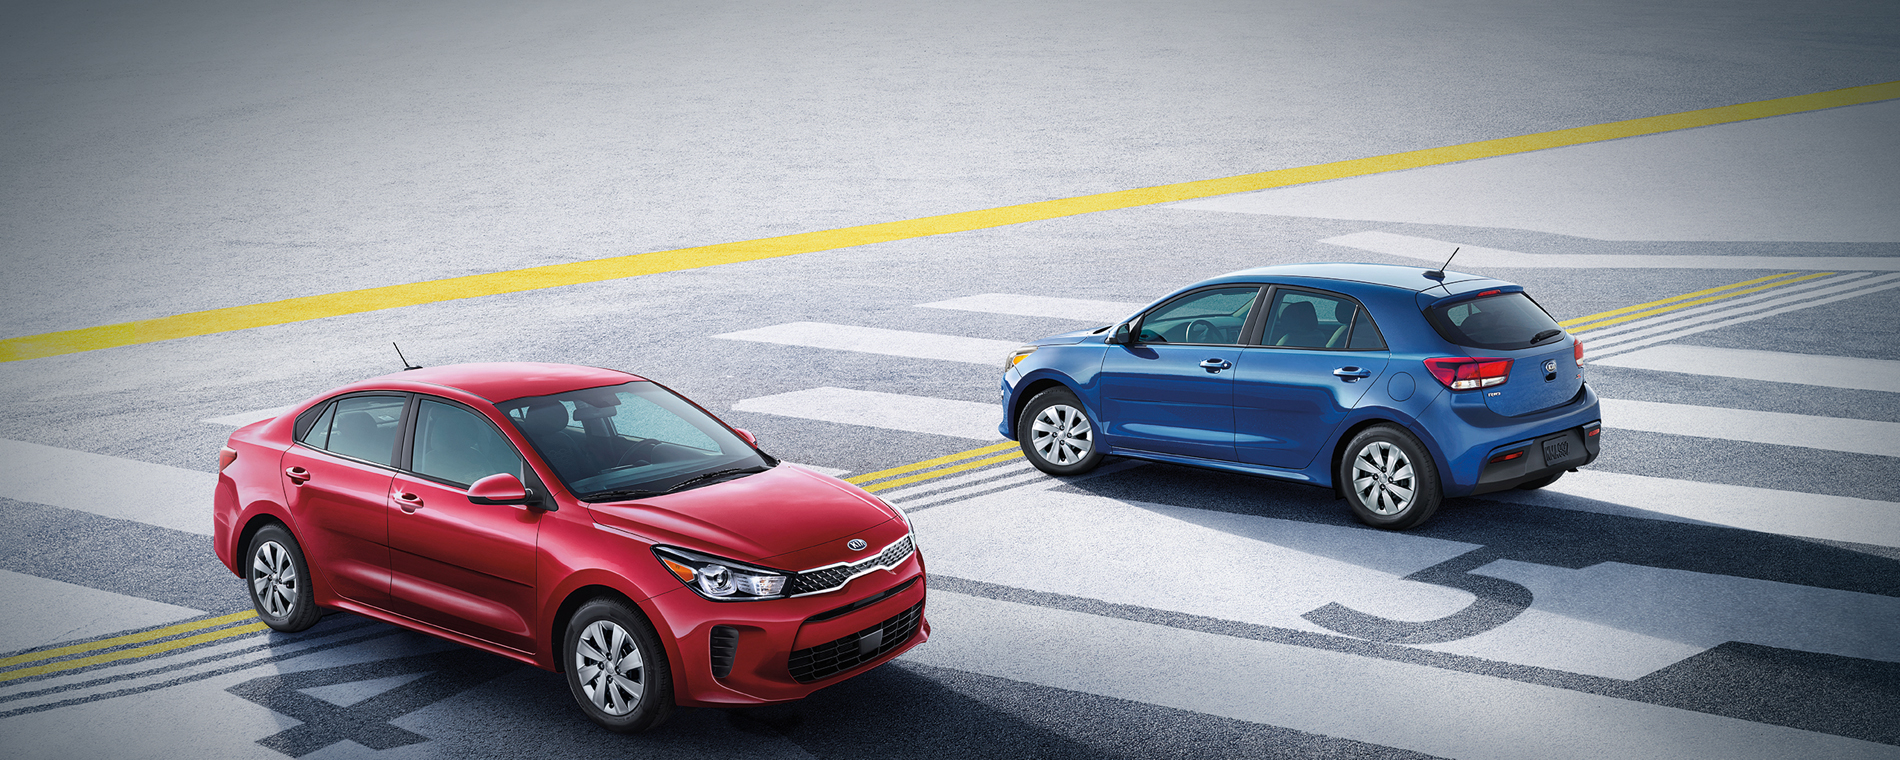 2019 Kia Rio: Kia Accessory Guide